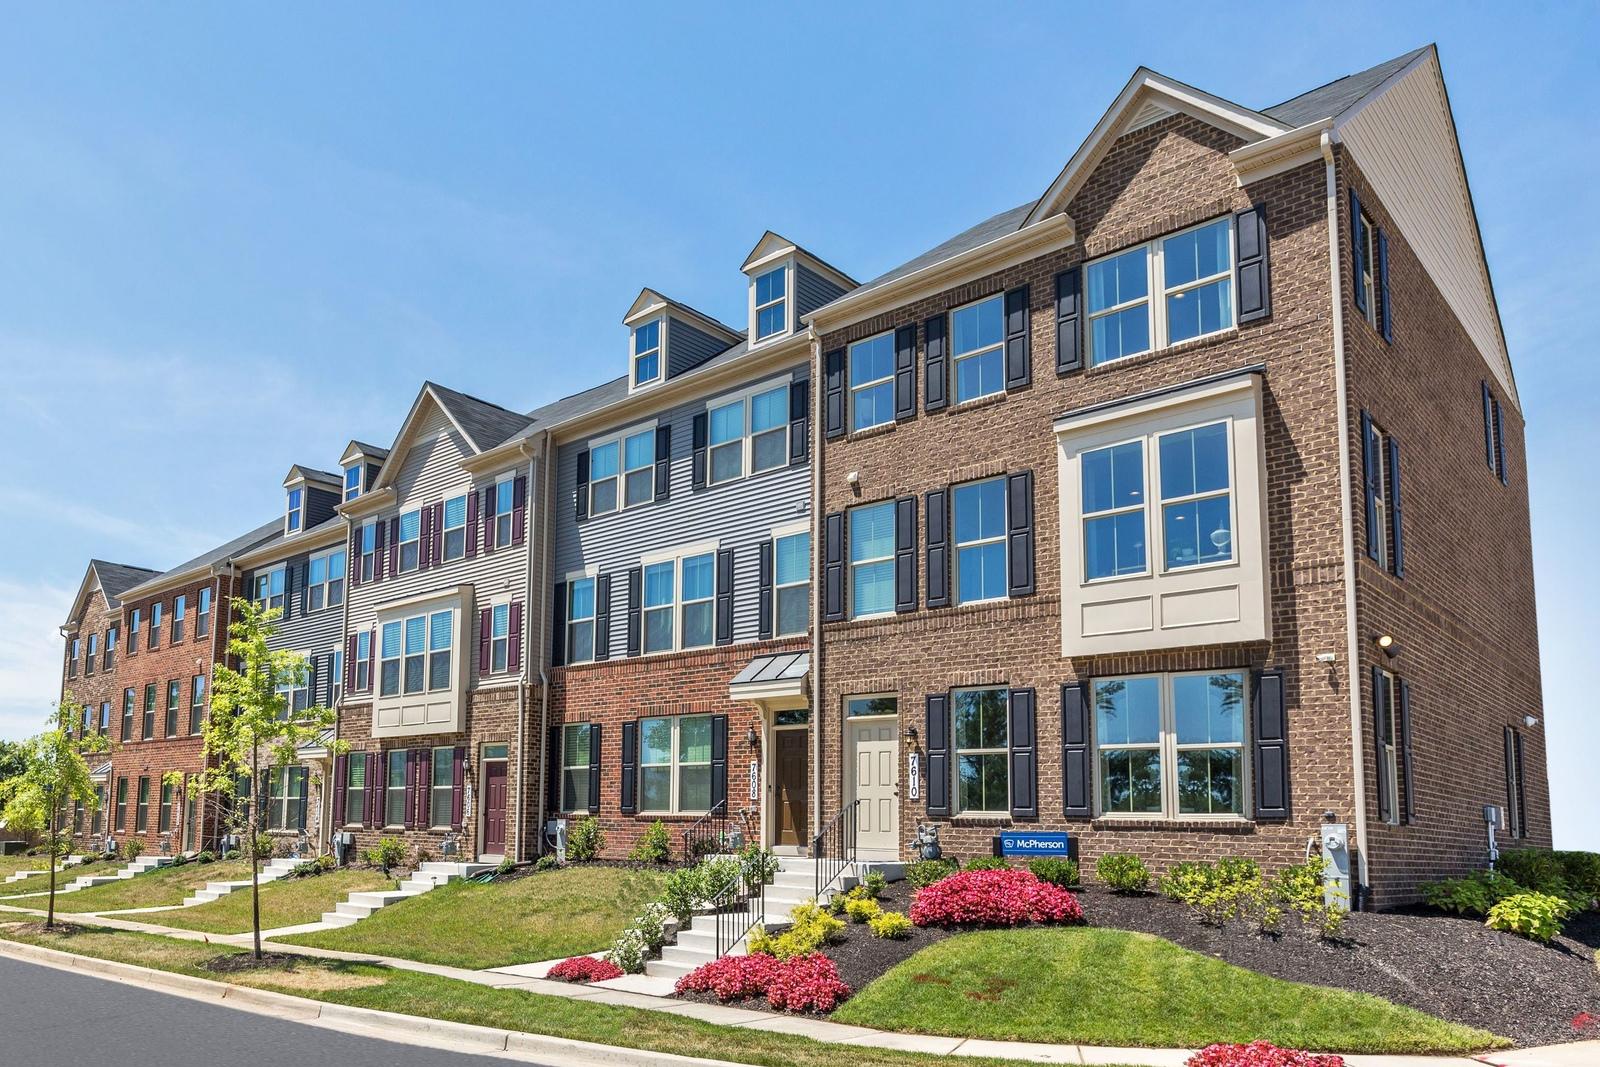 New Homes For Sale At Blackburn Townhomes In Manassas Va Within The